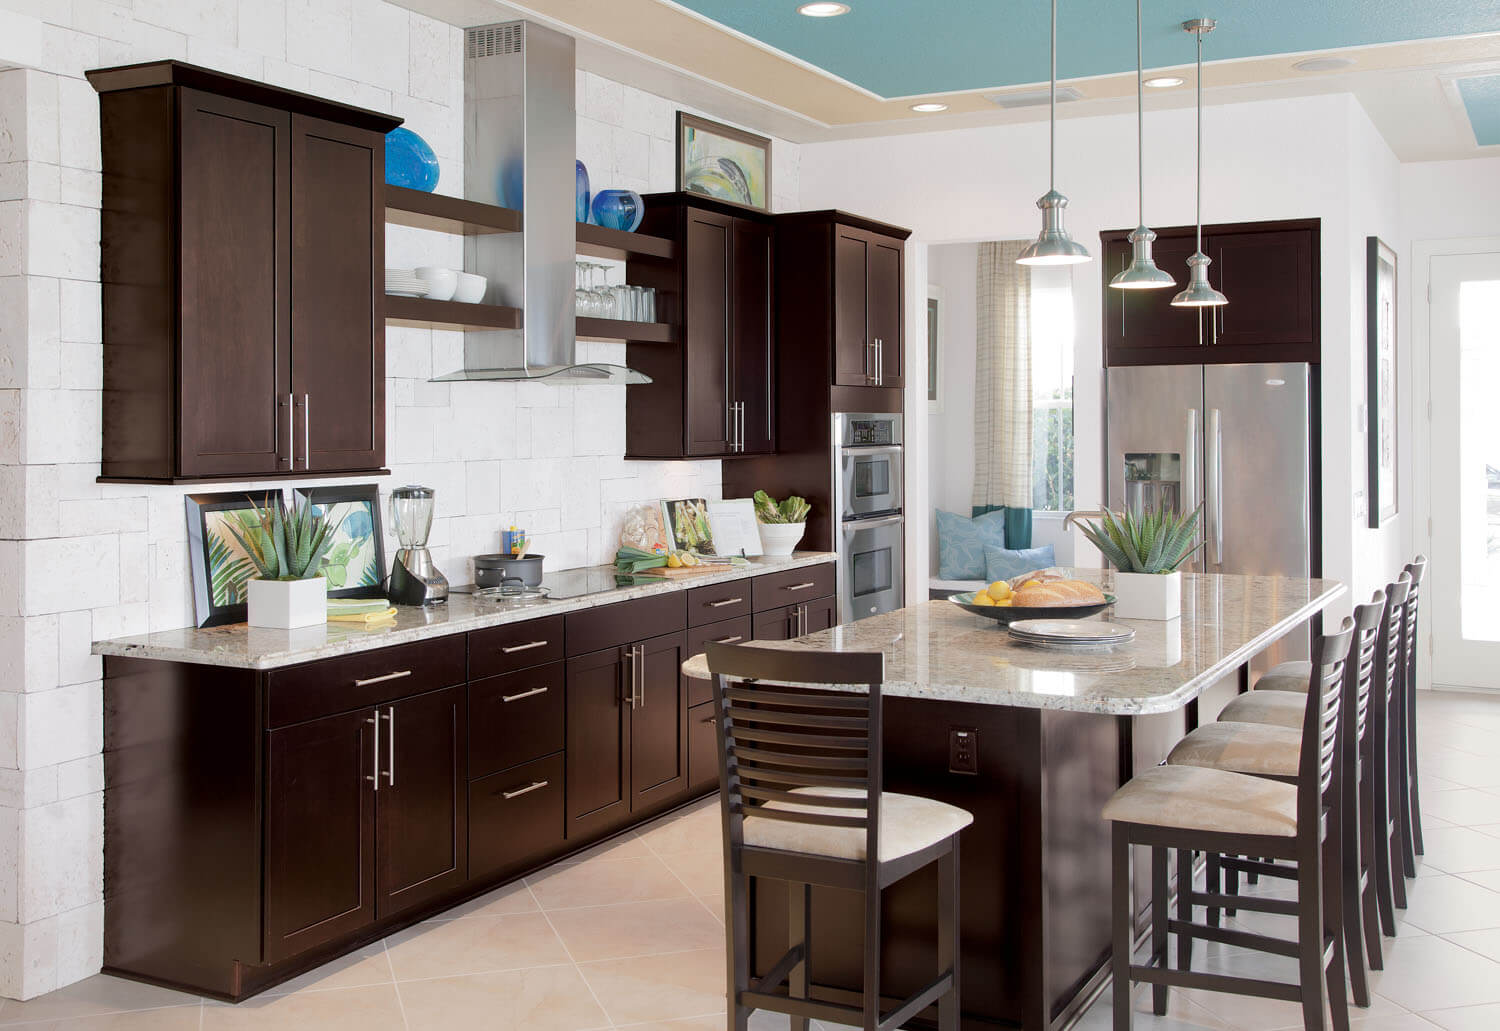 Coffee Color Kitchen Cabinets Builder Concept Homes Feature Timberlake Cabinetry At Ibs 2012